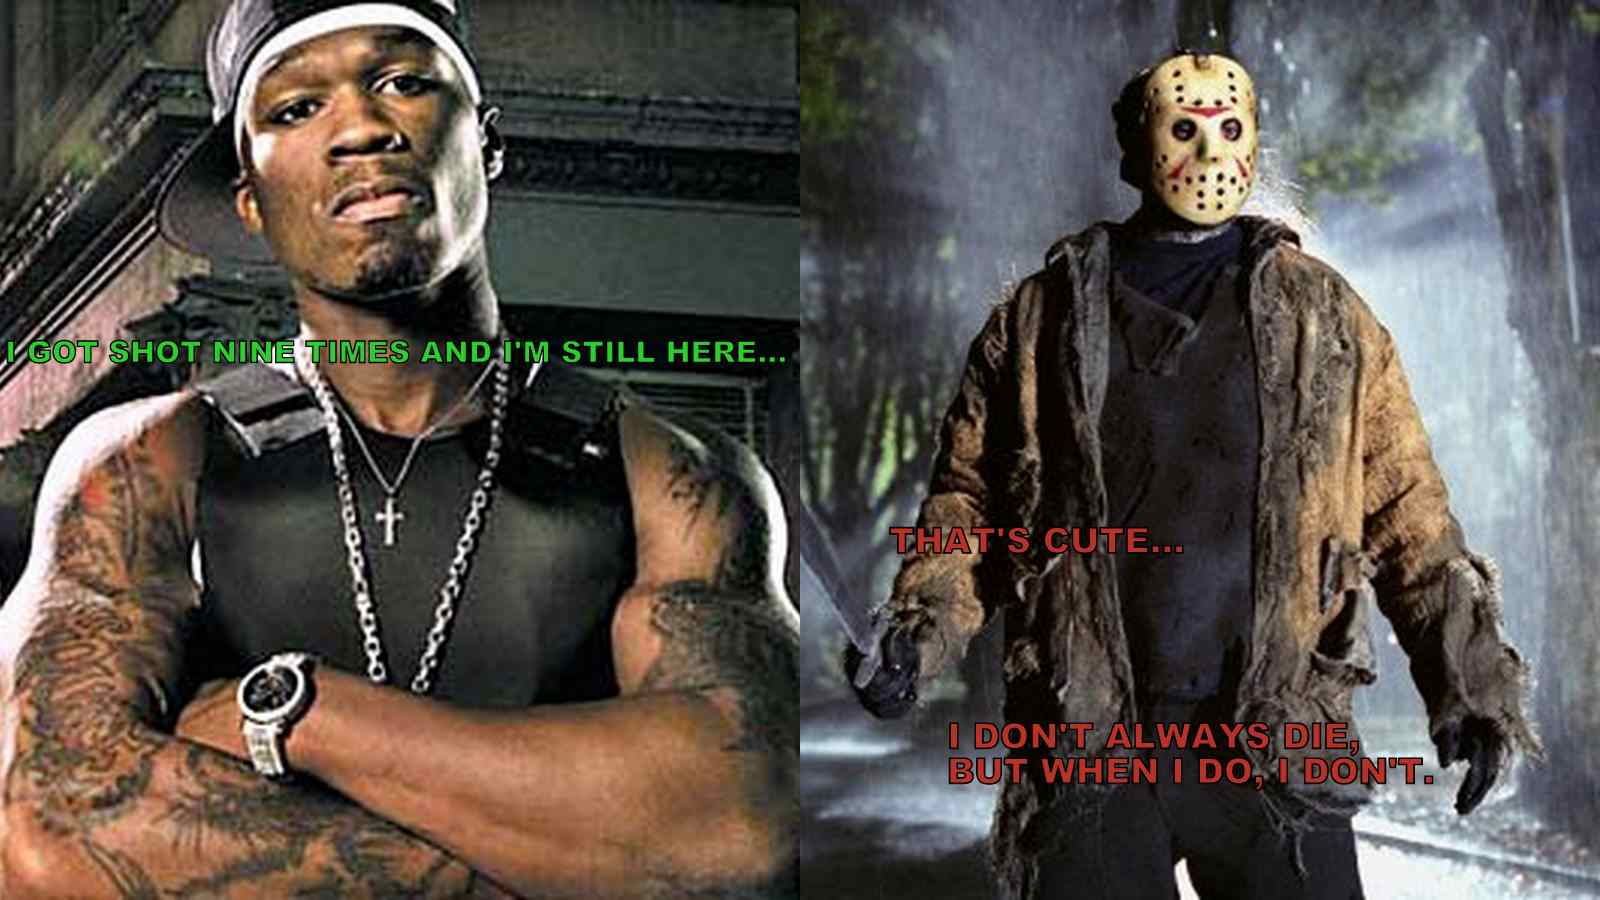 Hip hop star Fifty Cent and infamous horror character Jason Voorhees from the movie Friday the 13th.